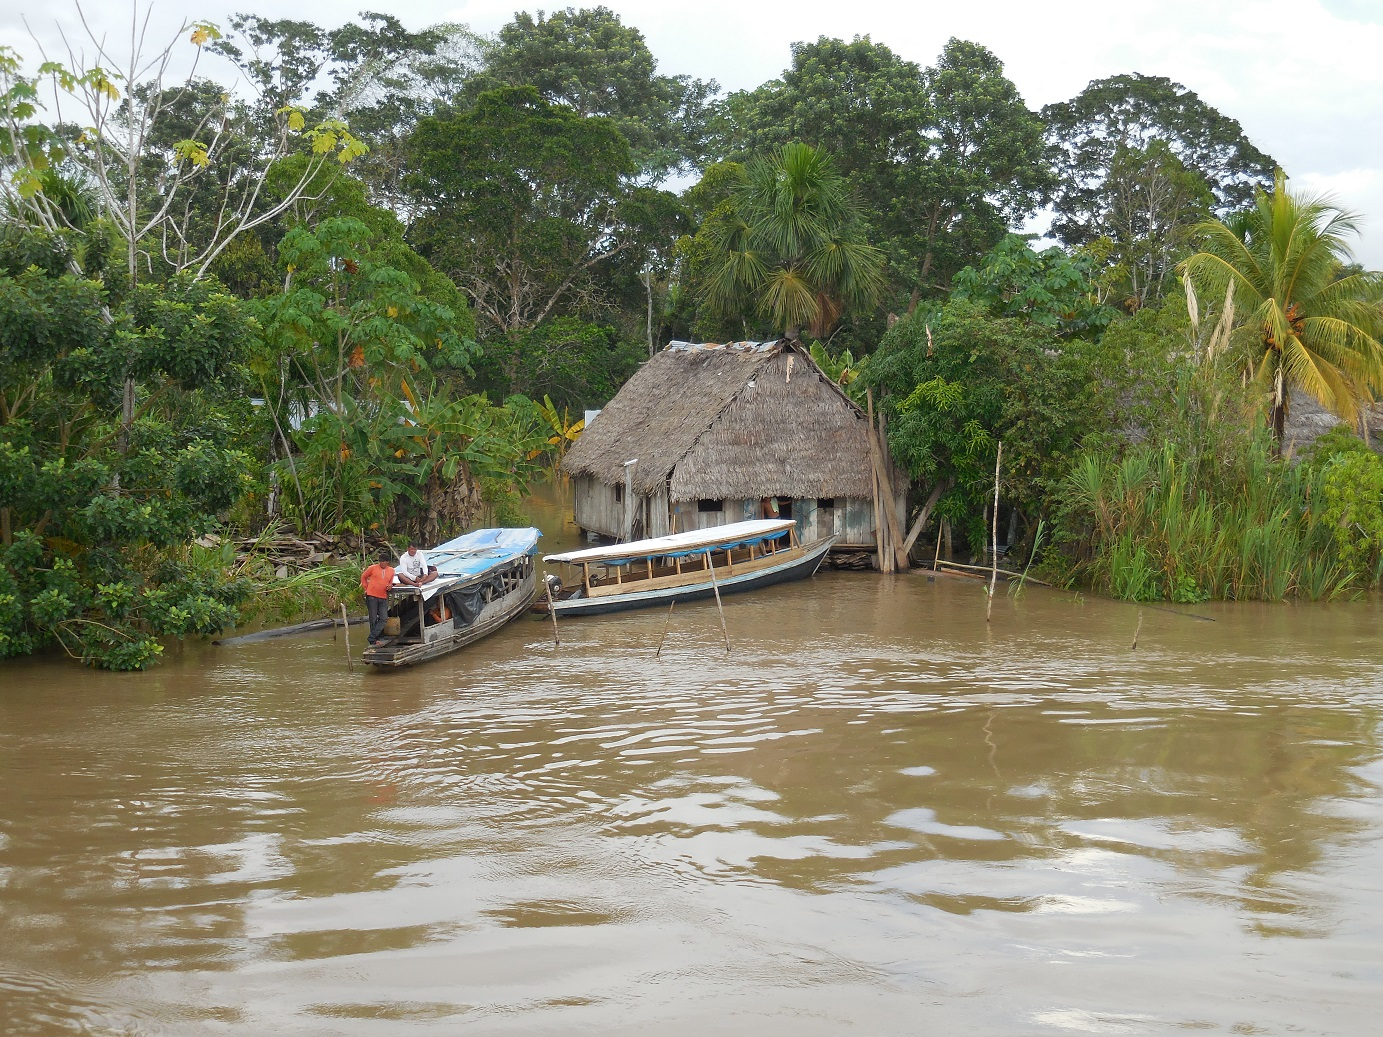 Local hut mildly flooded